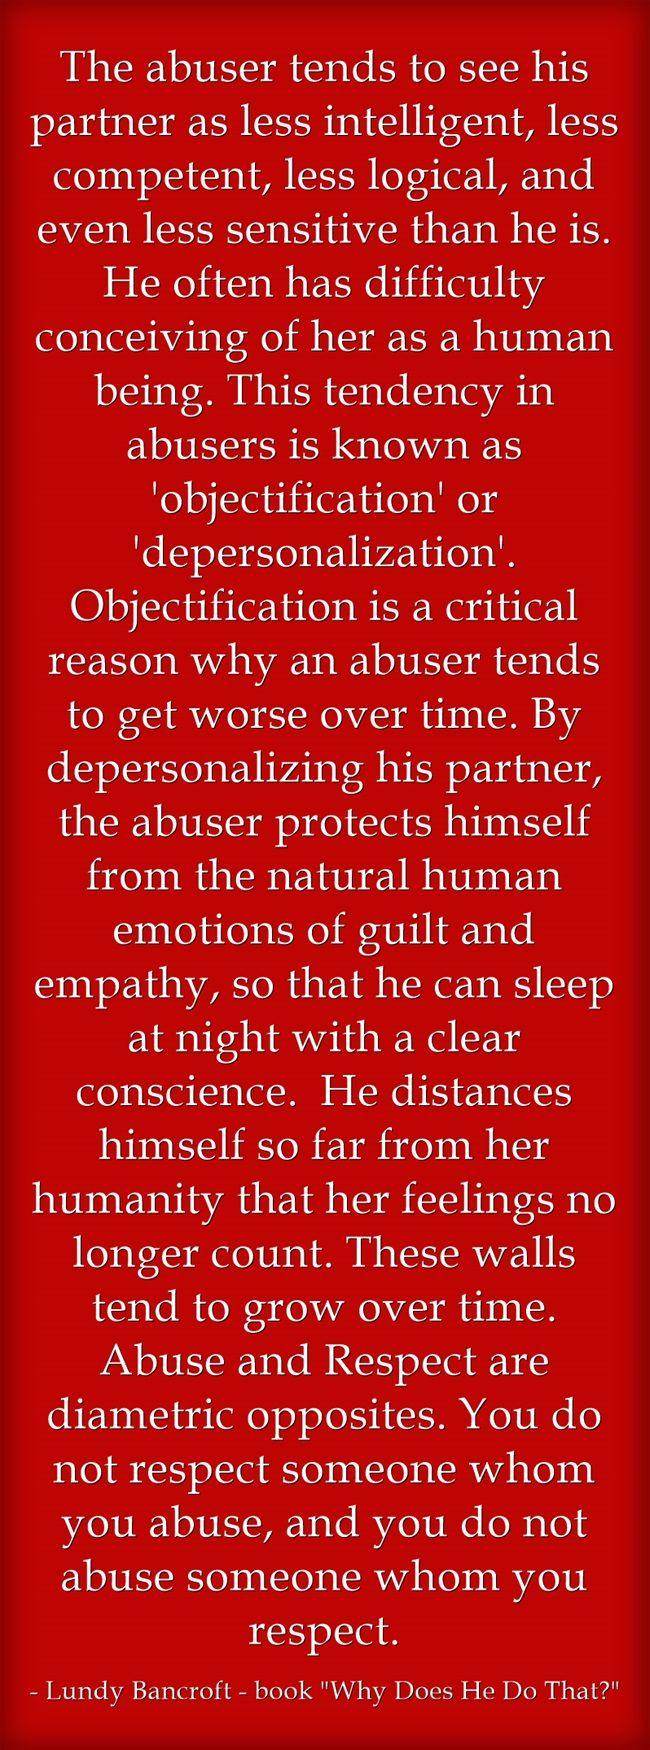 The abuser tends to see his partner as less intelligent, less competent, less logical, and even less sensitive than he is. He often has difficulty conceiving of her as a human being. This tendency in abusers is known as 'objectification' or 'depersonalization'. Objectification is a critical reason why an abuser tends to get worse over time. By depersonalizing his partner, the abuser protects himself from the natural human emotions of guilt and empathy, so that he can sleep...